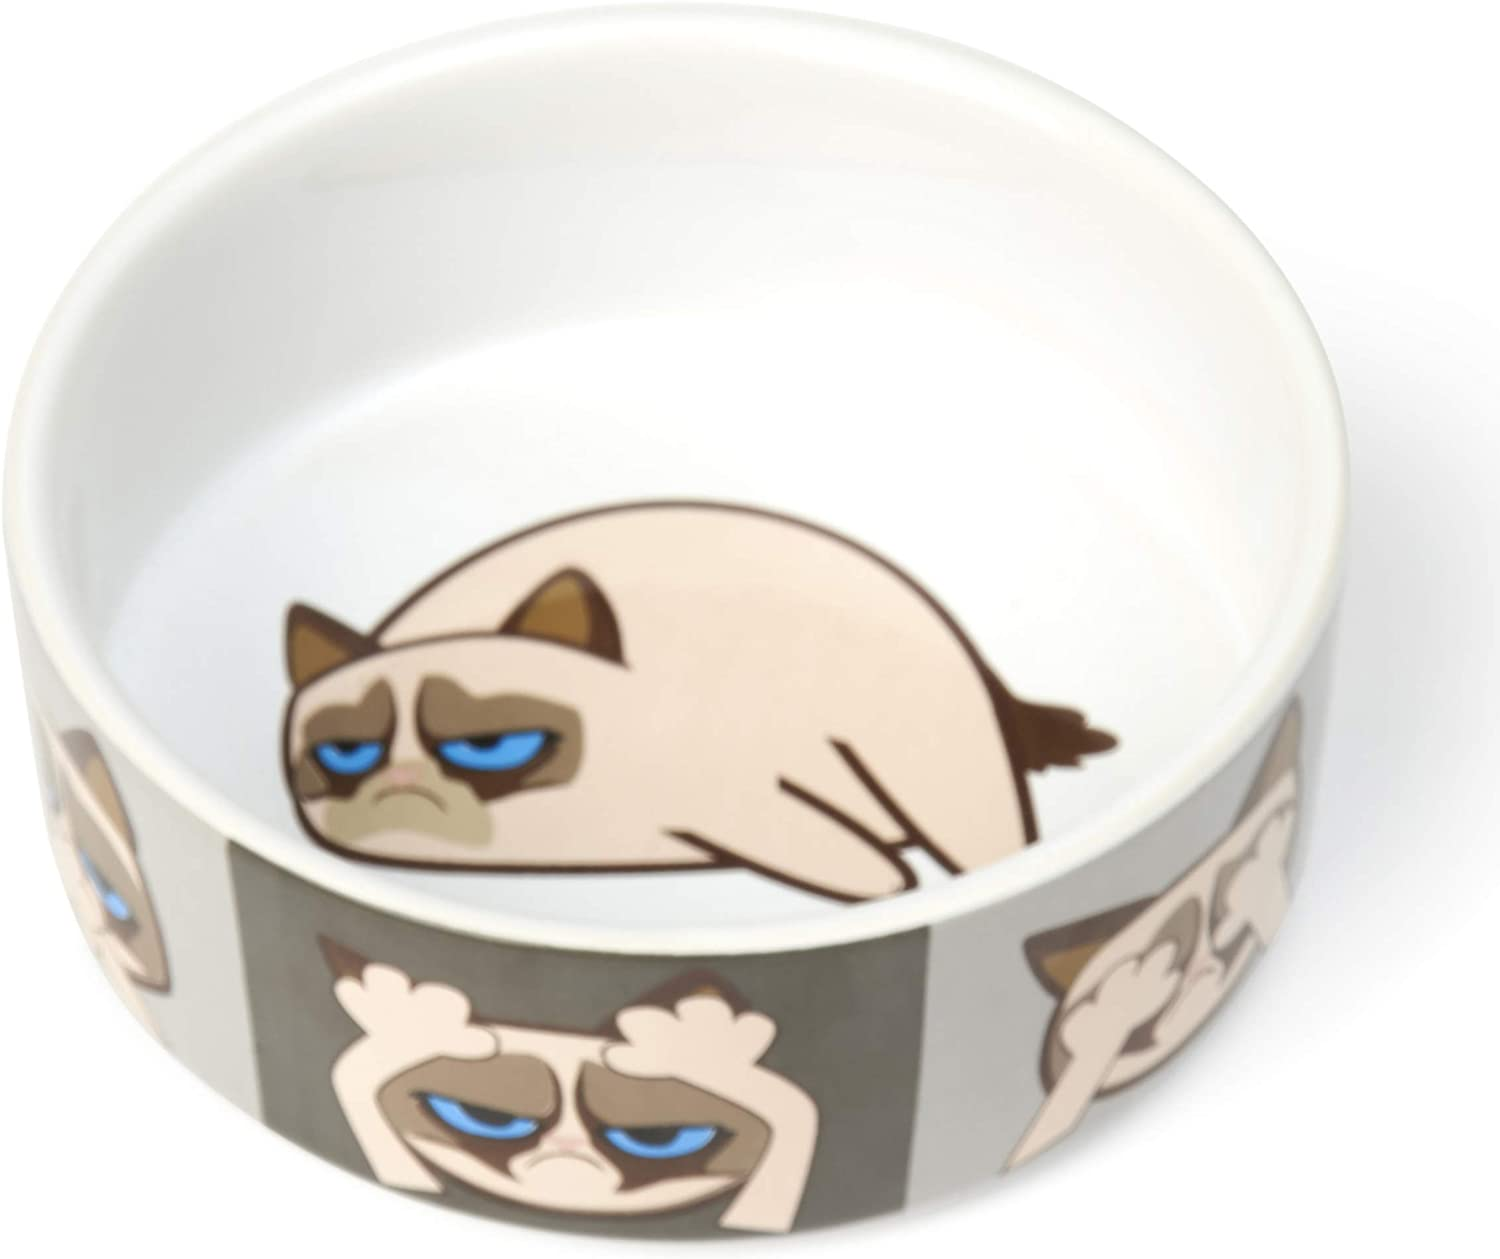 Grumpy Cat by PetRageous Designs Here//See//Speak No Evil 5 Bowl G16099 Gray 2 Cups